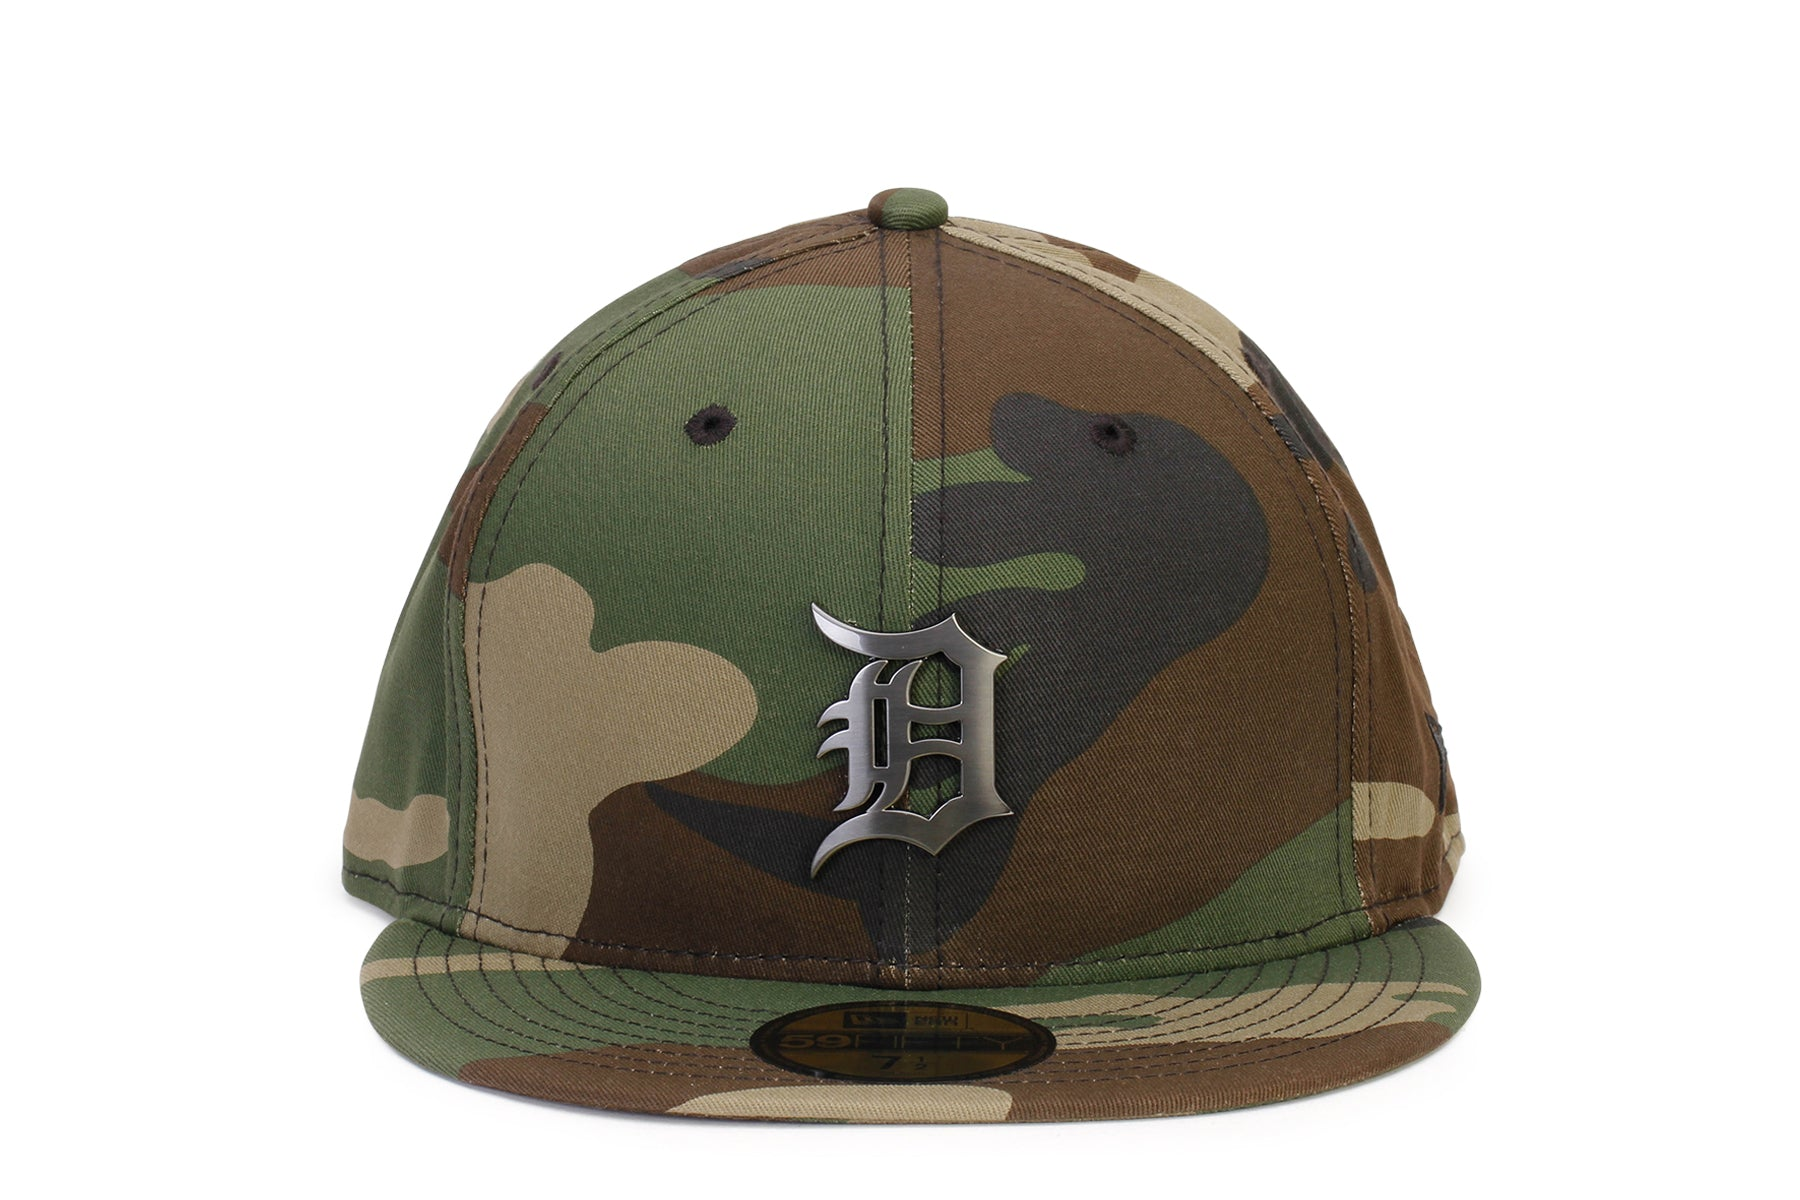 59FIFTY Detroit Tigers Camo